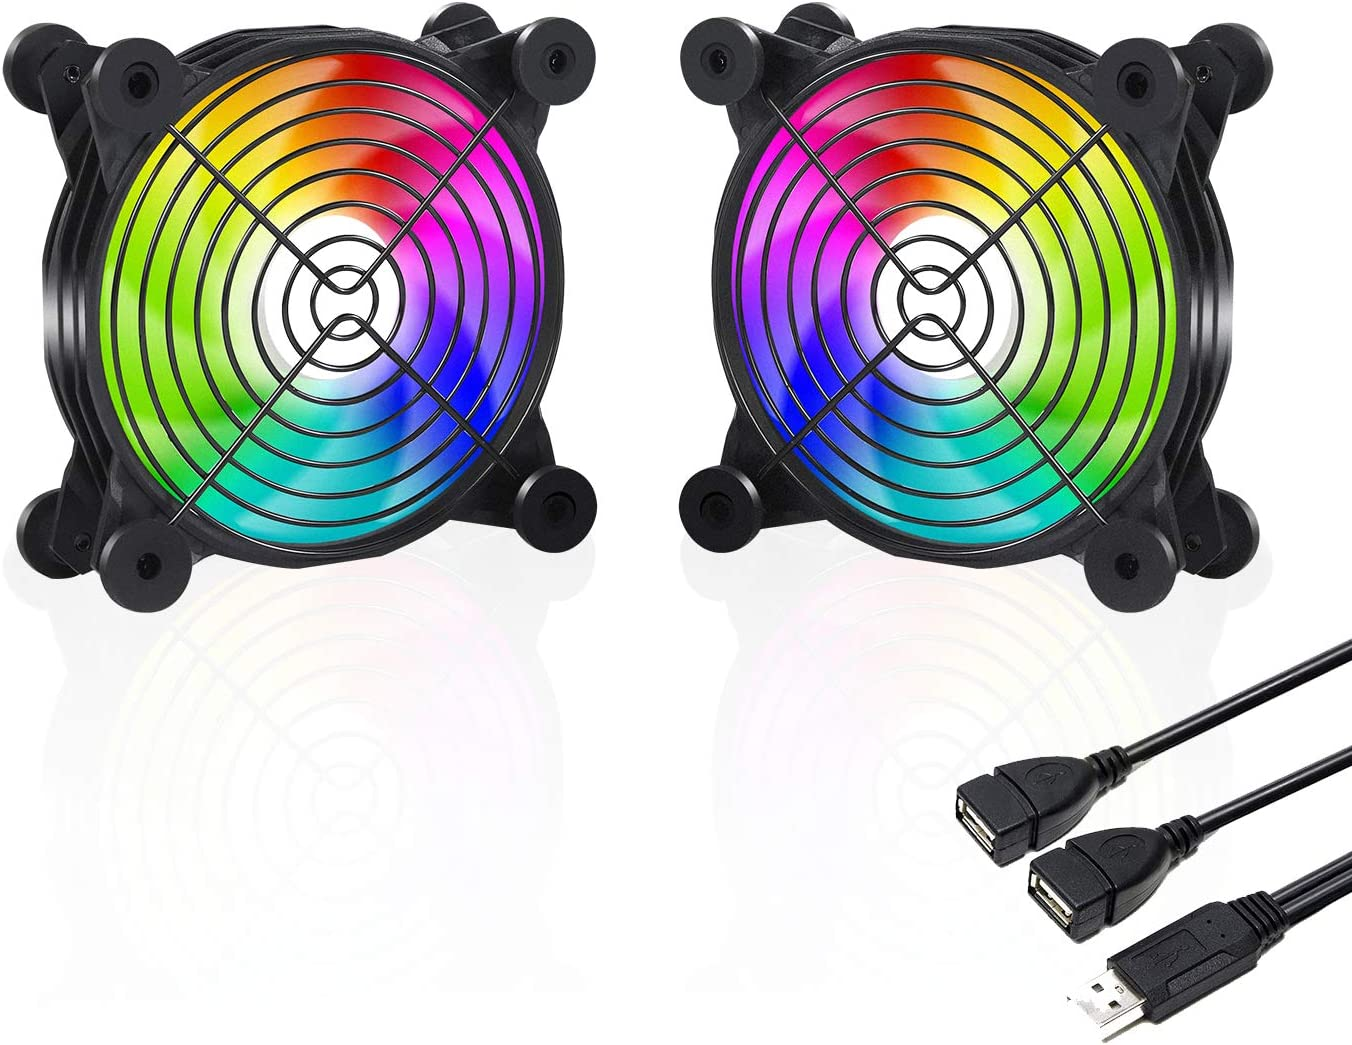 upHere U1206 USB Fan Dual-Ball Bearings Rainbow LED Silent 120mm Fan for Computer Cases Computer Cabinet Playstation Xbox Cooling